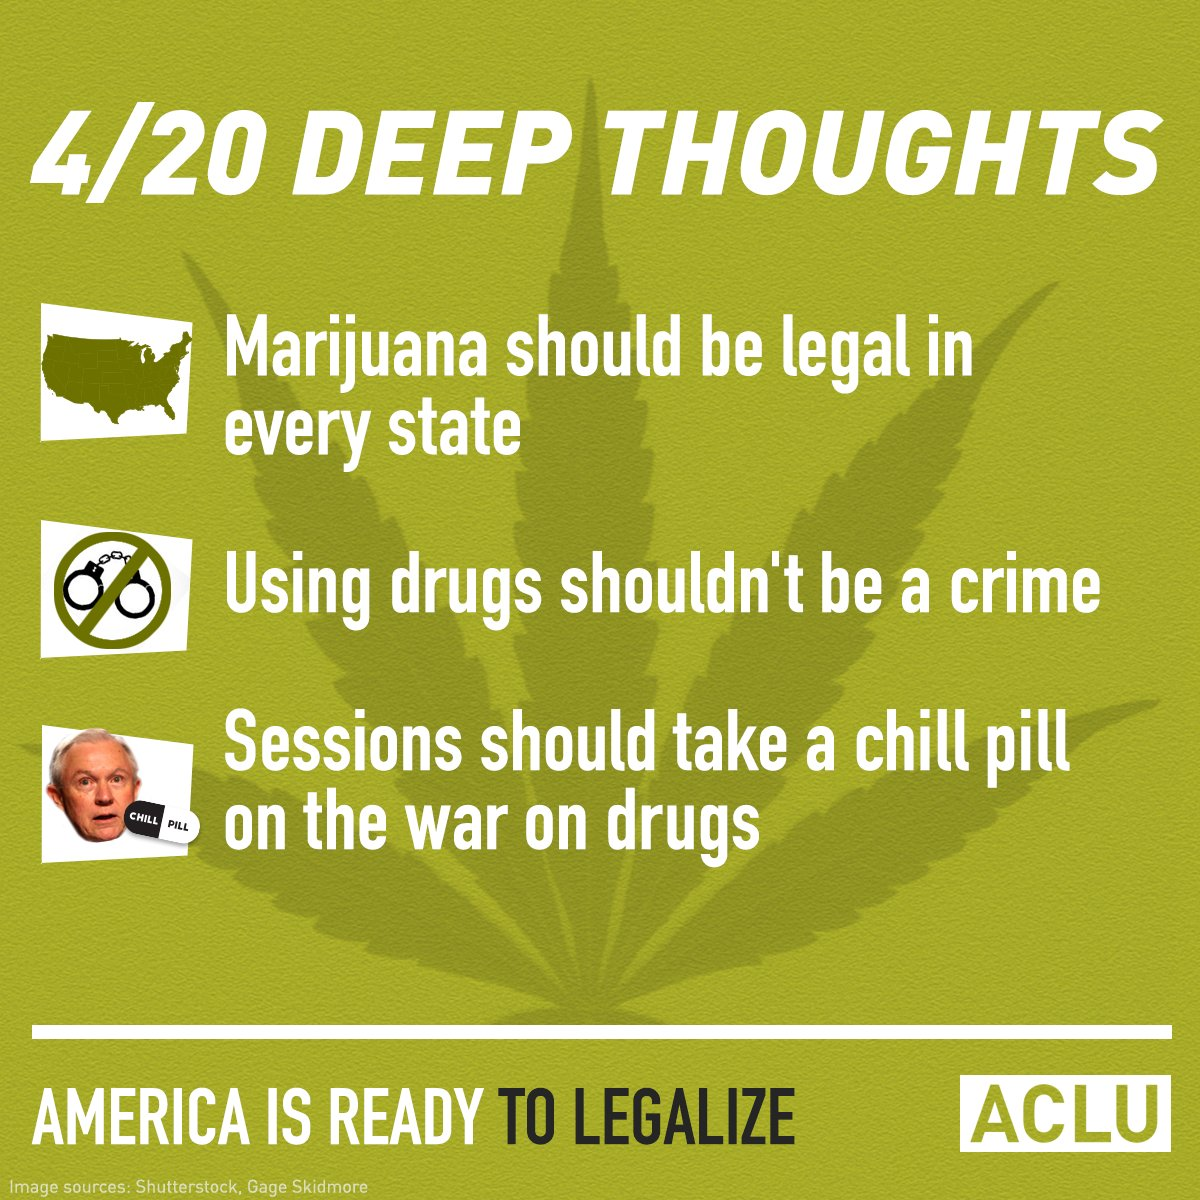 Happy 420 from all of us at the ACLU!